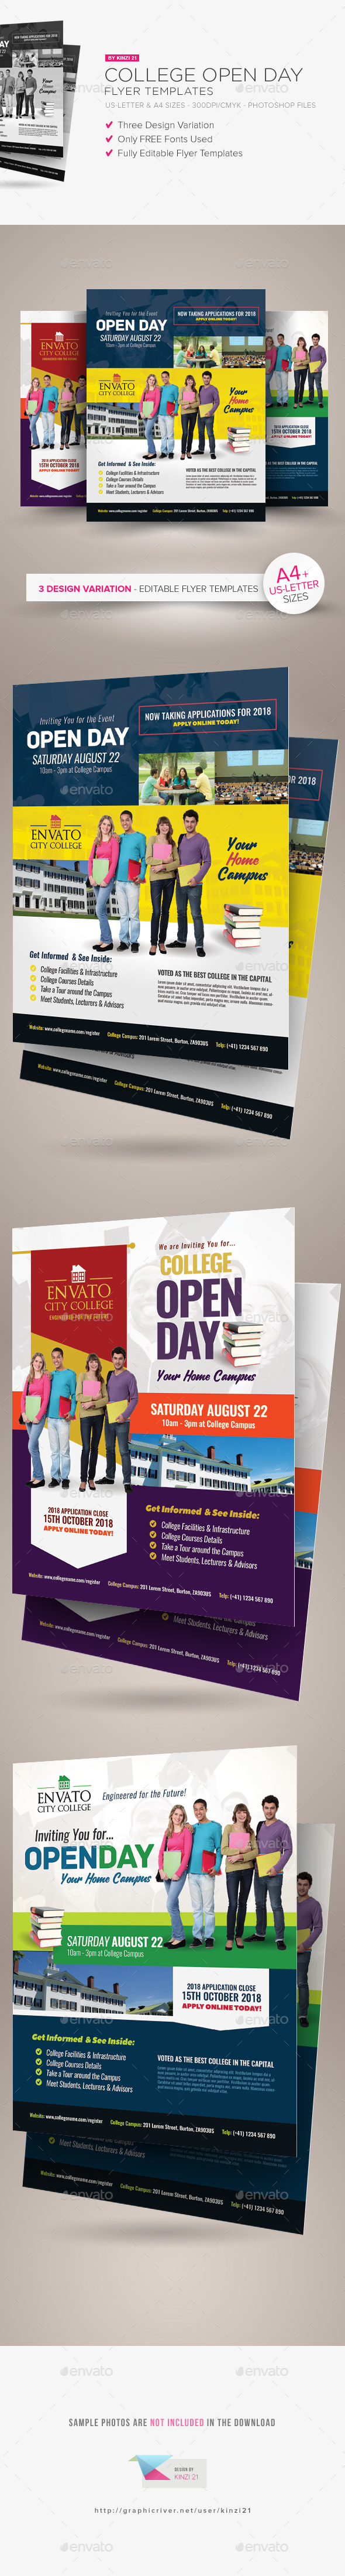 College Open Day Flyer Templates - Miscellaneous Events